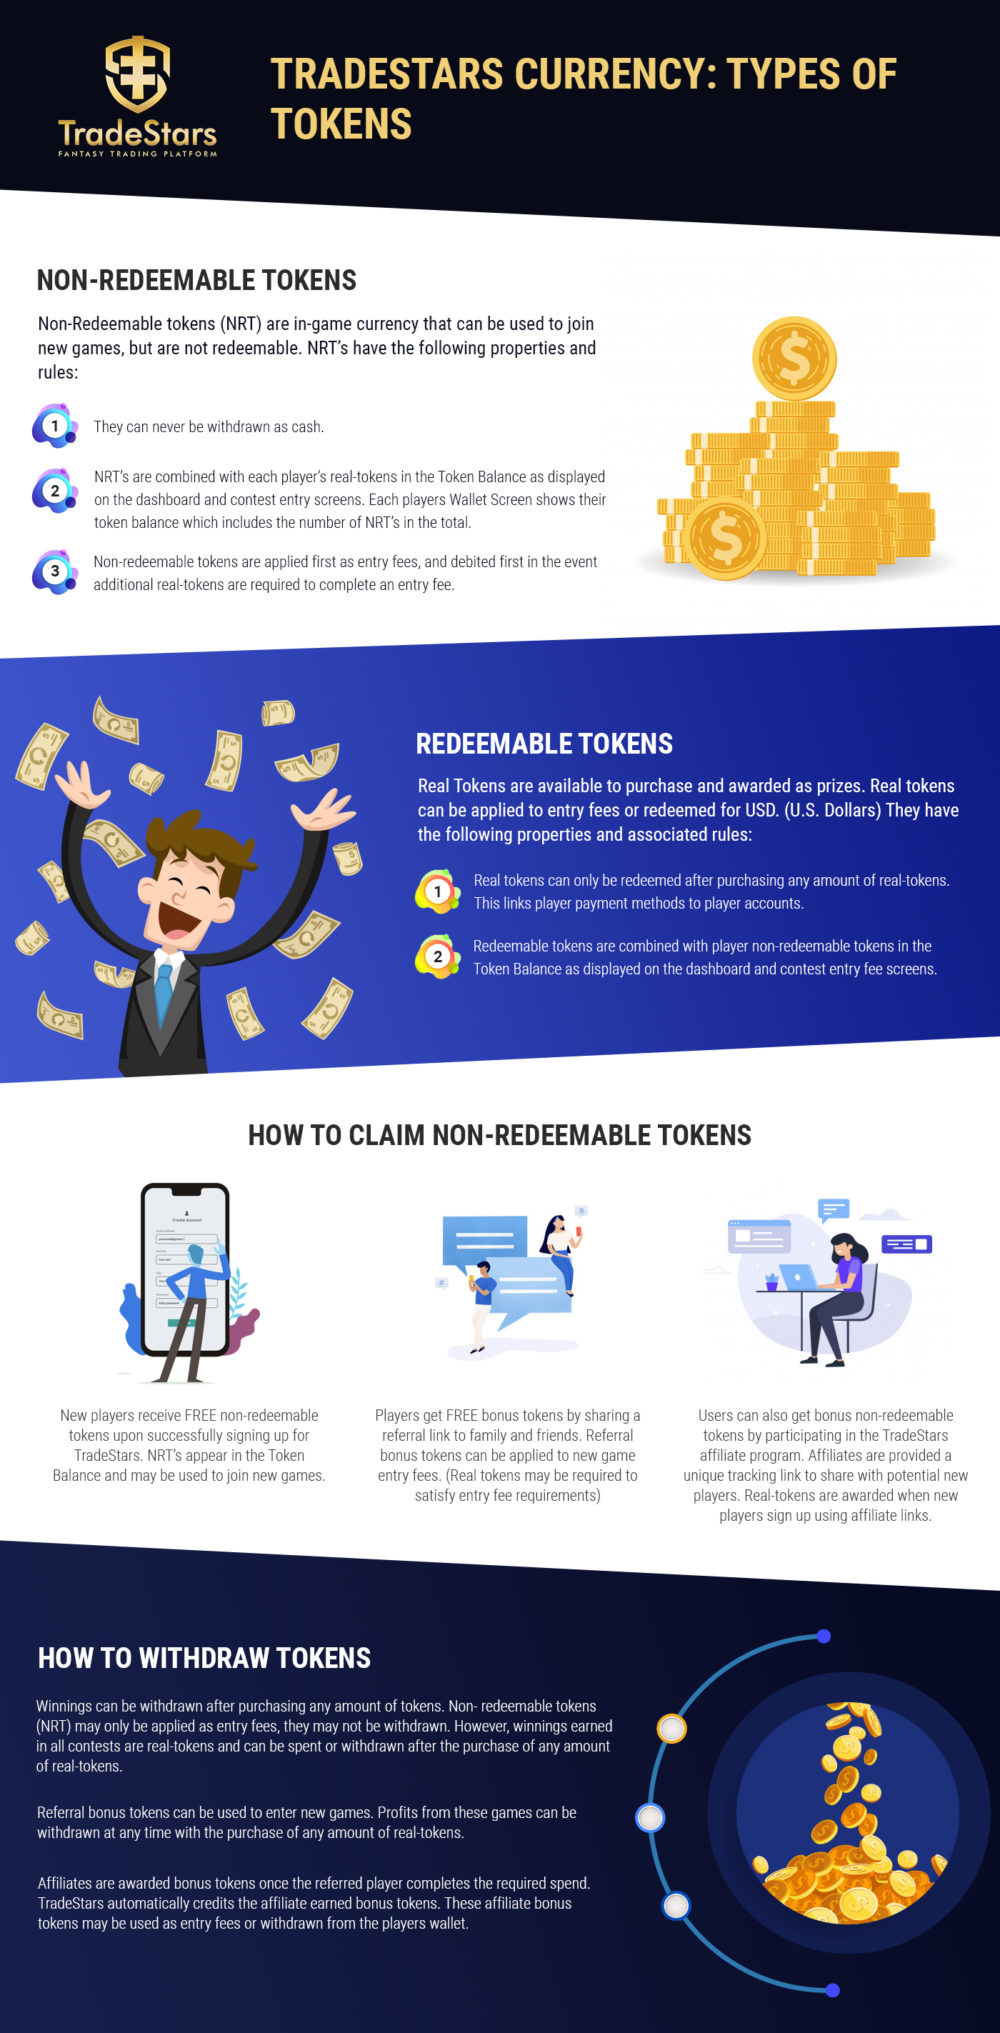 TradeStars Currency: Types of Tokens